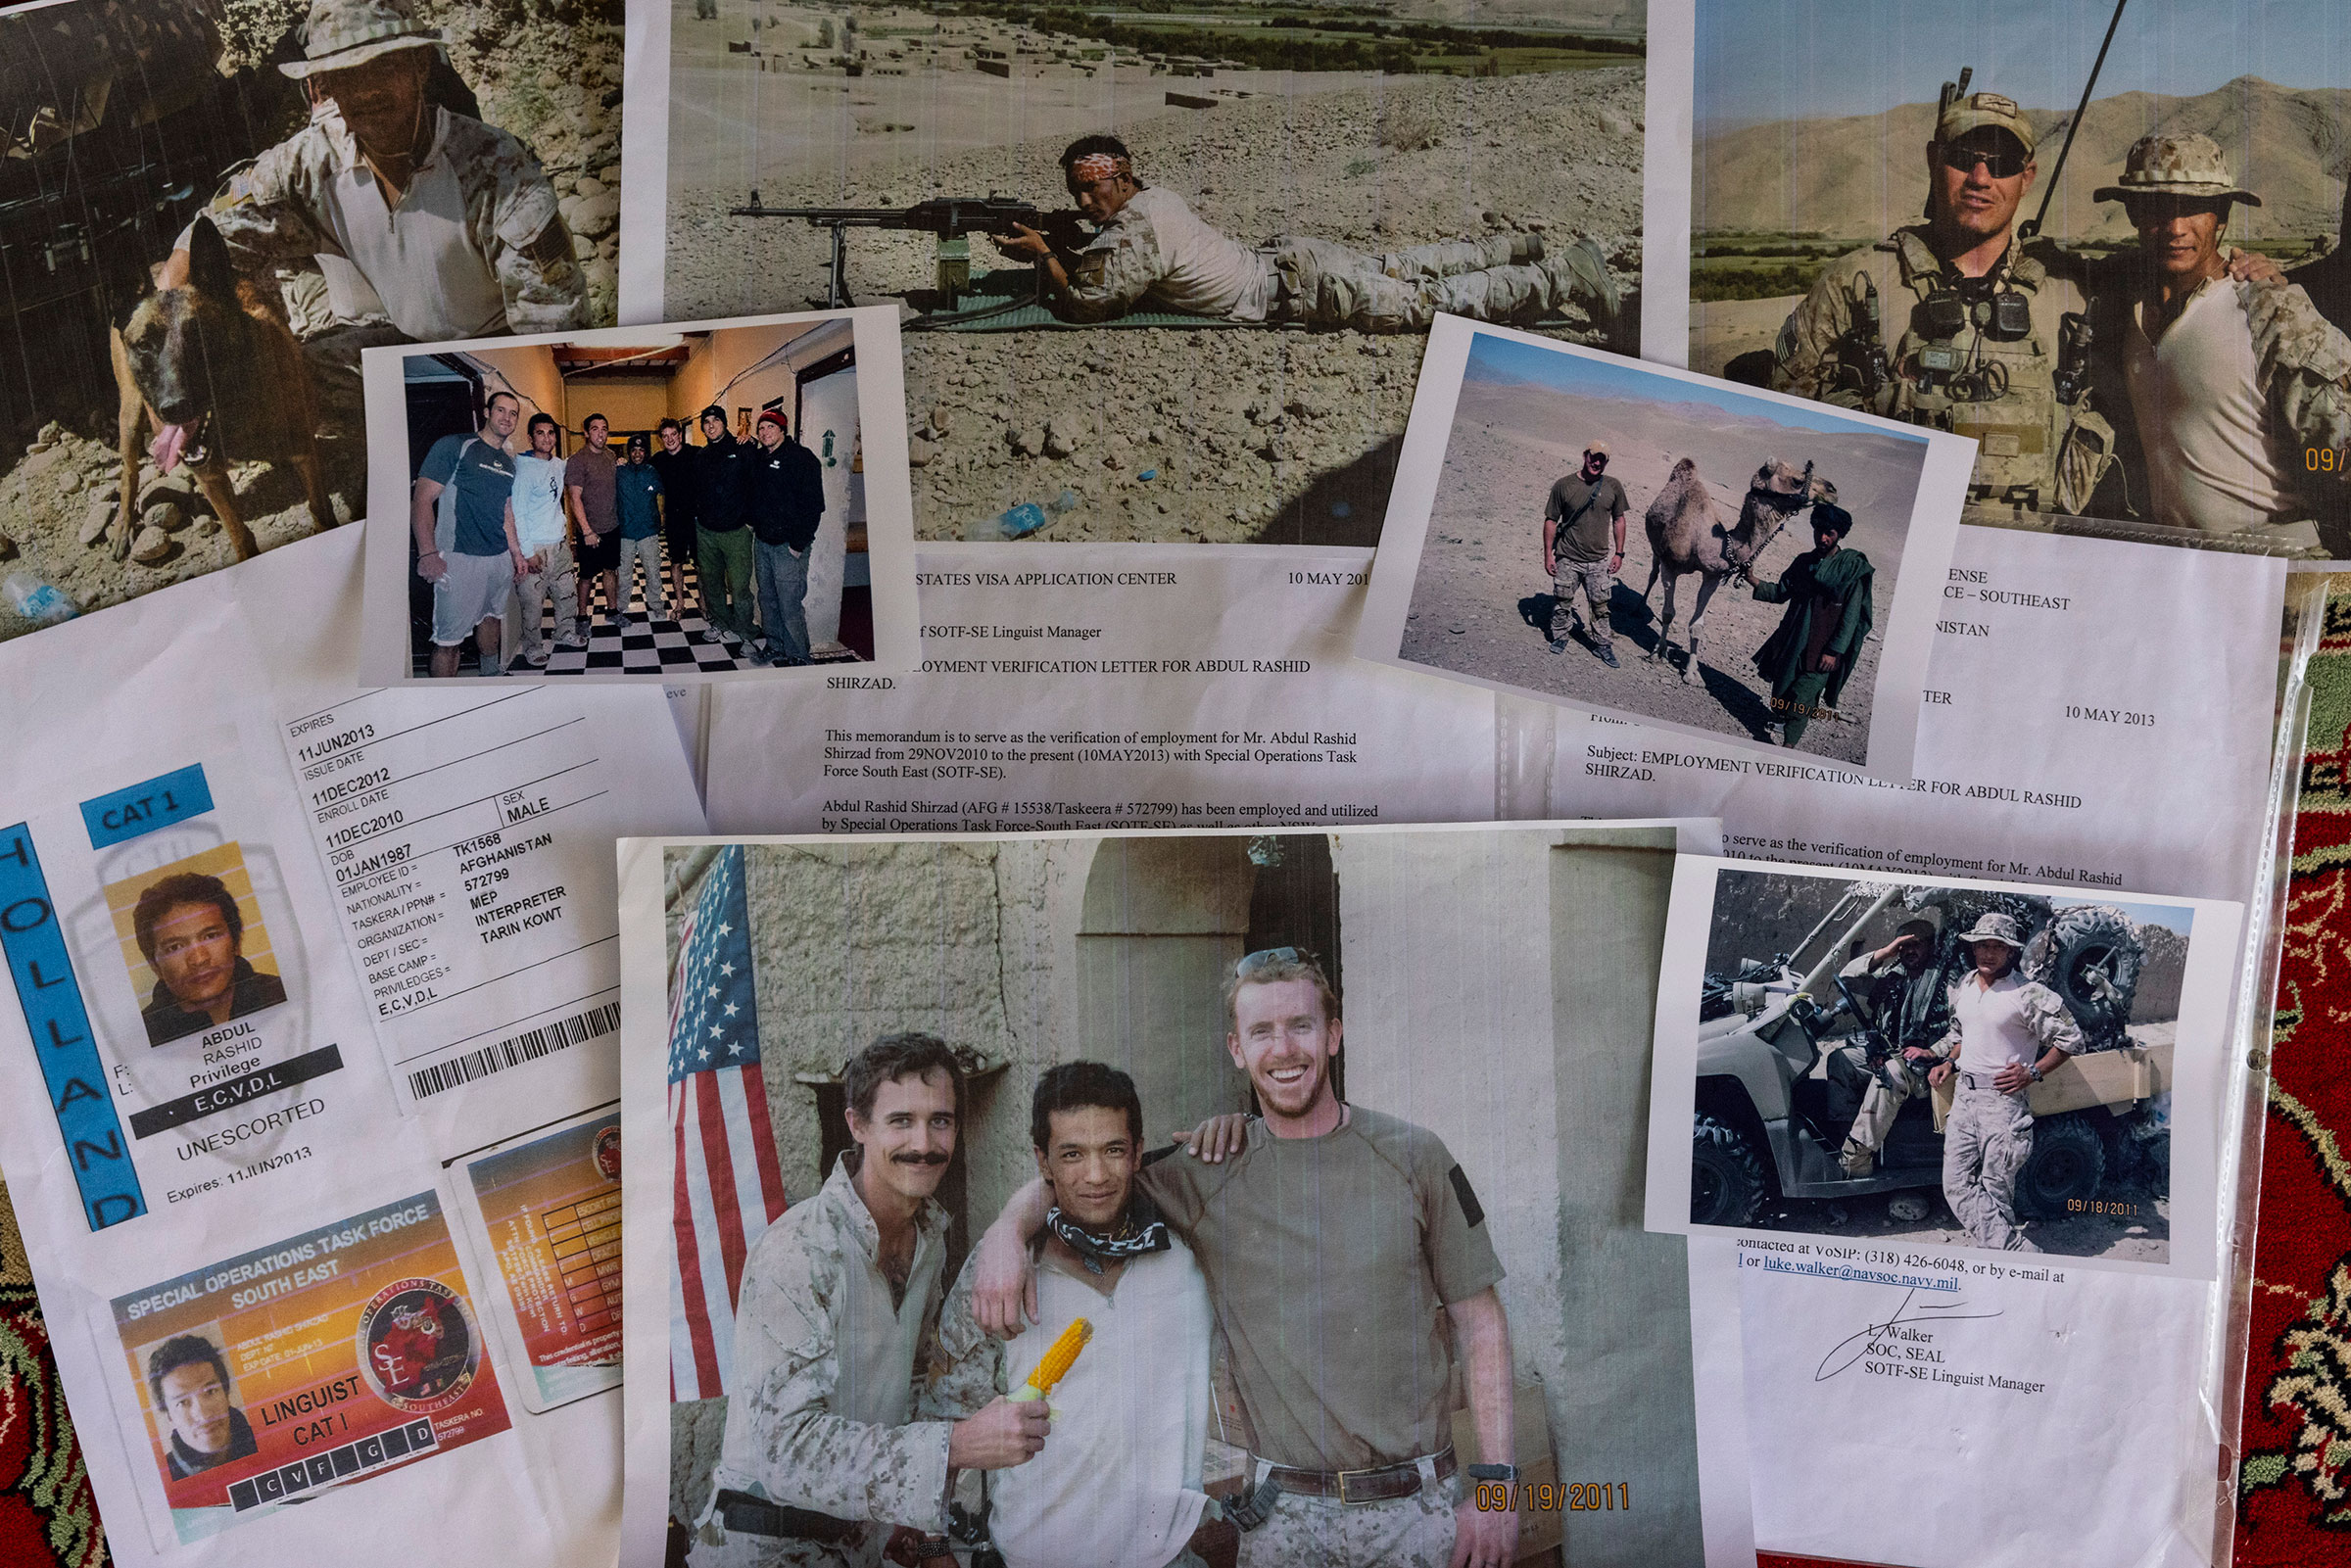 Photos and letters from the military collected by Abdul Rashid Shirzad are seen July 1, 2021 in Kabul, Afghanistan. Shirzad's application for a Special Immigrant Visa to the U.S. was denied without any explanation after years of service to the U.S. military.